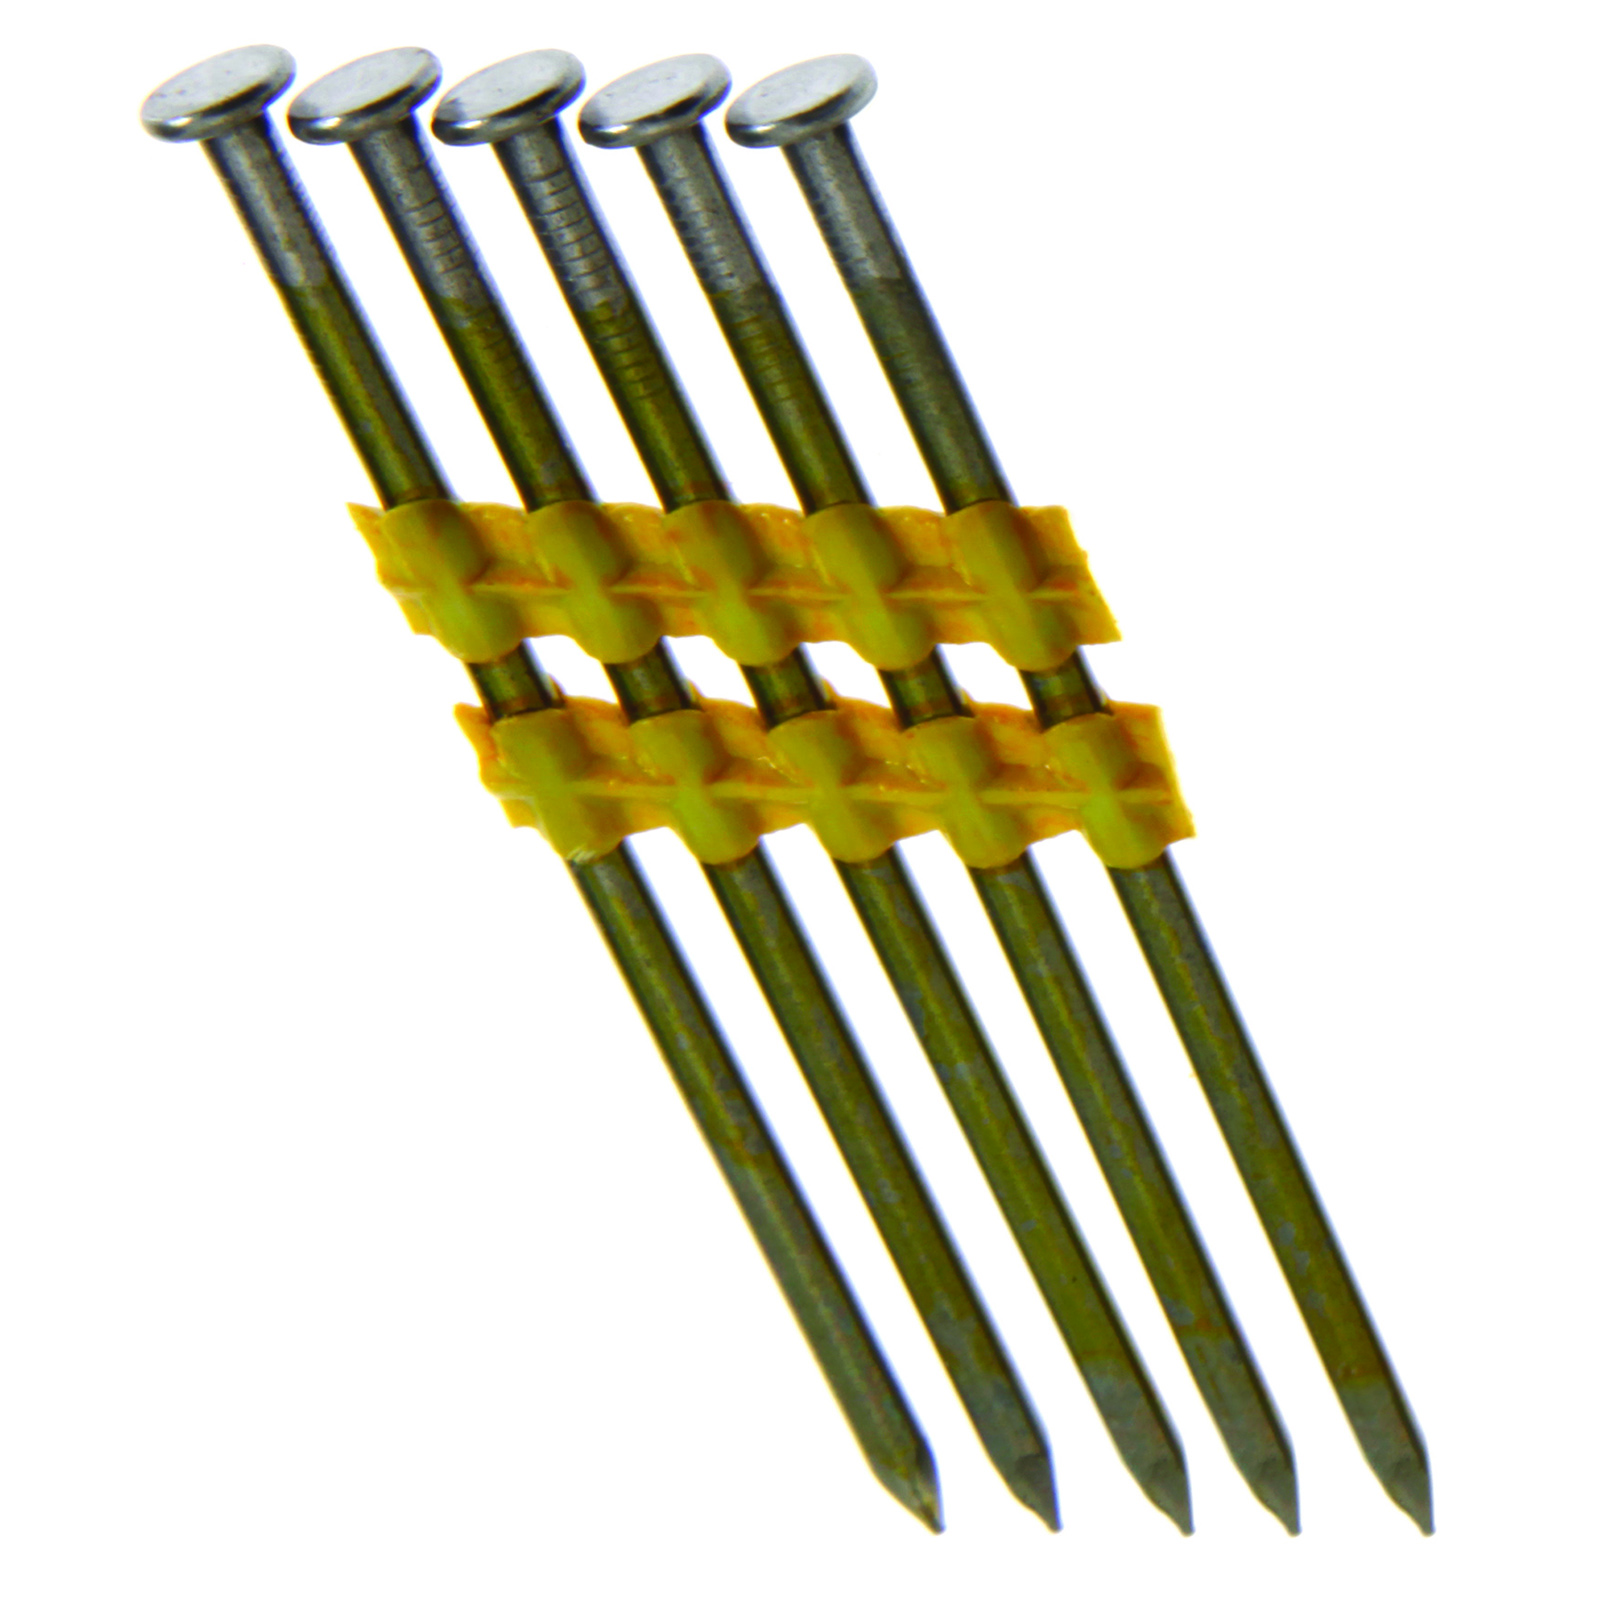 21 6D RH PLASTIC SMTH COATED STICK NAIL